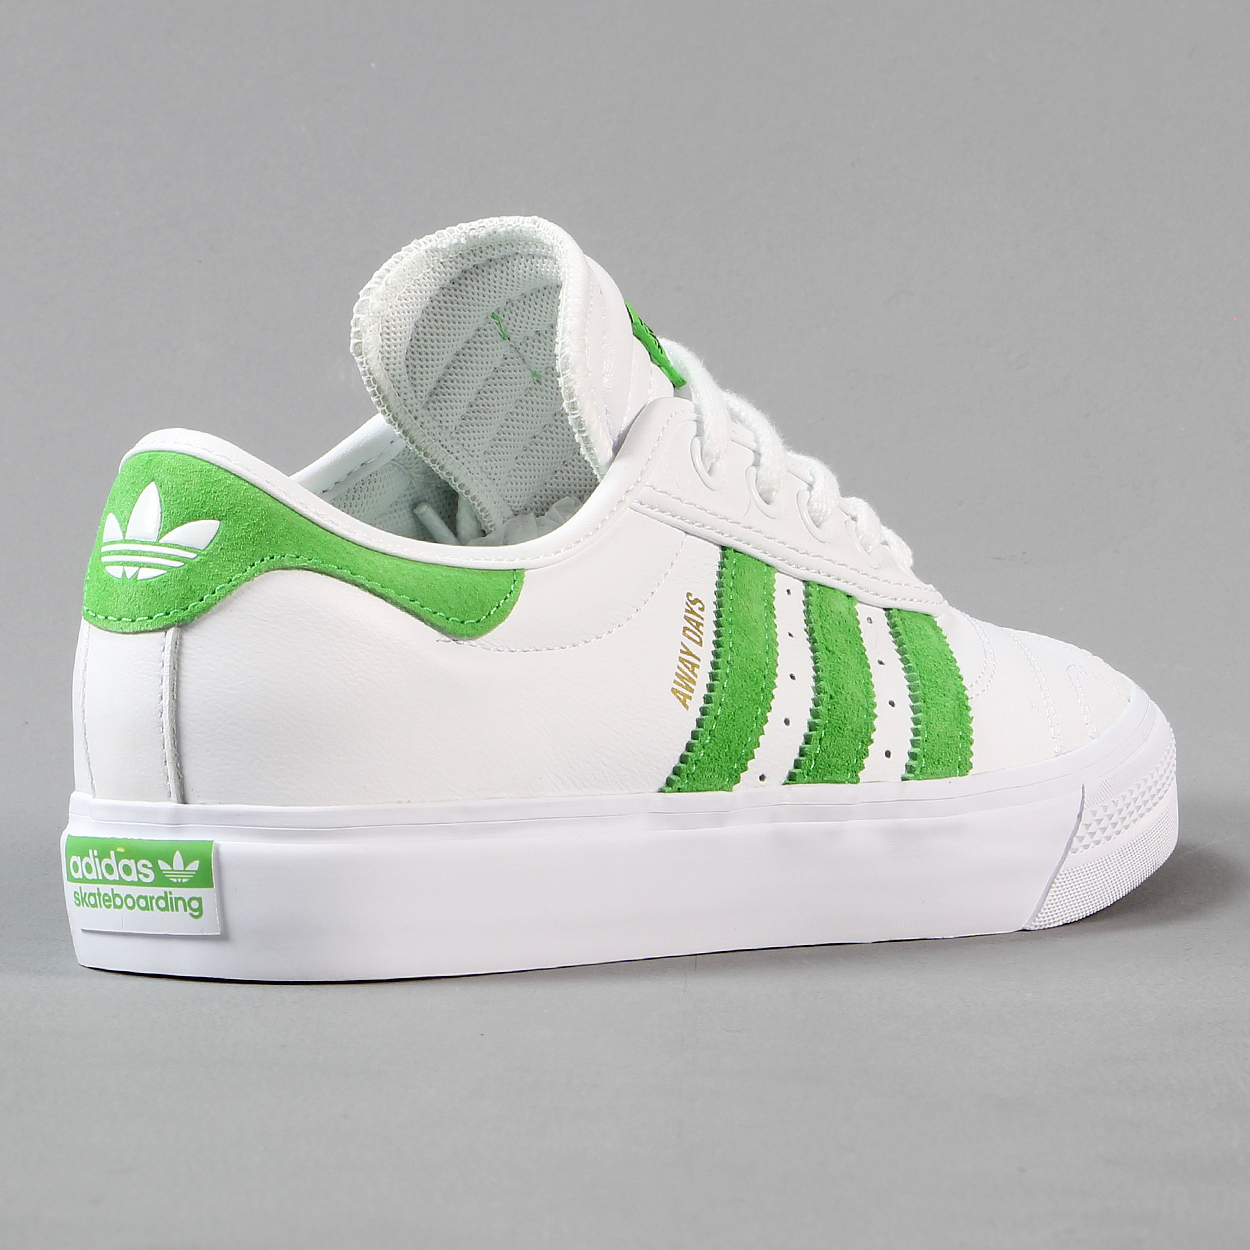 Future £22 Adidas Away Shoe Days 24 White Skateboarding Official Lime shdxQrtC